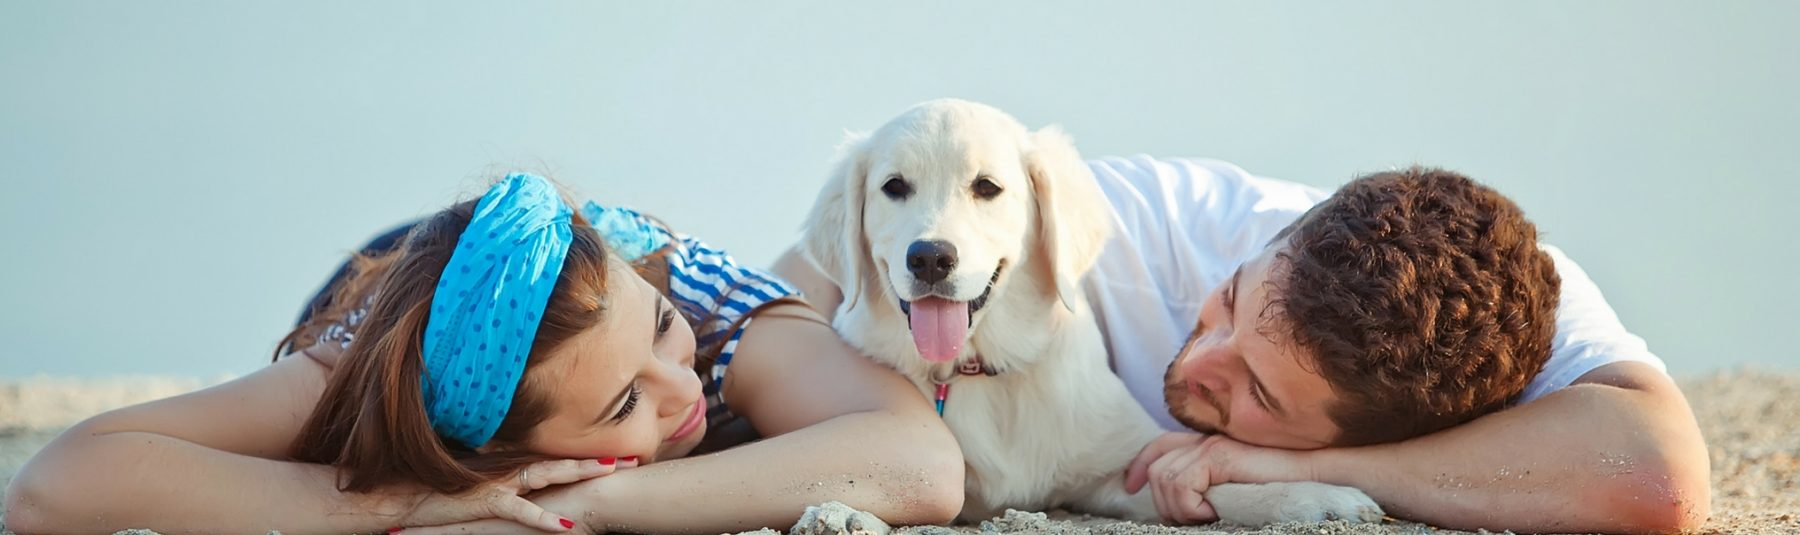 Two people and a dog lying on sand at the beach